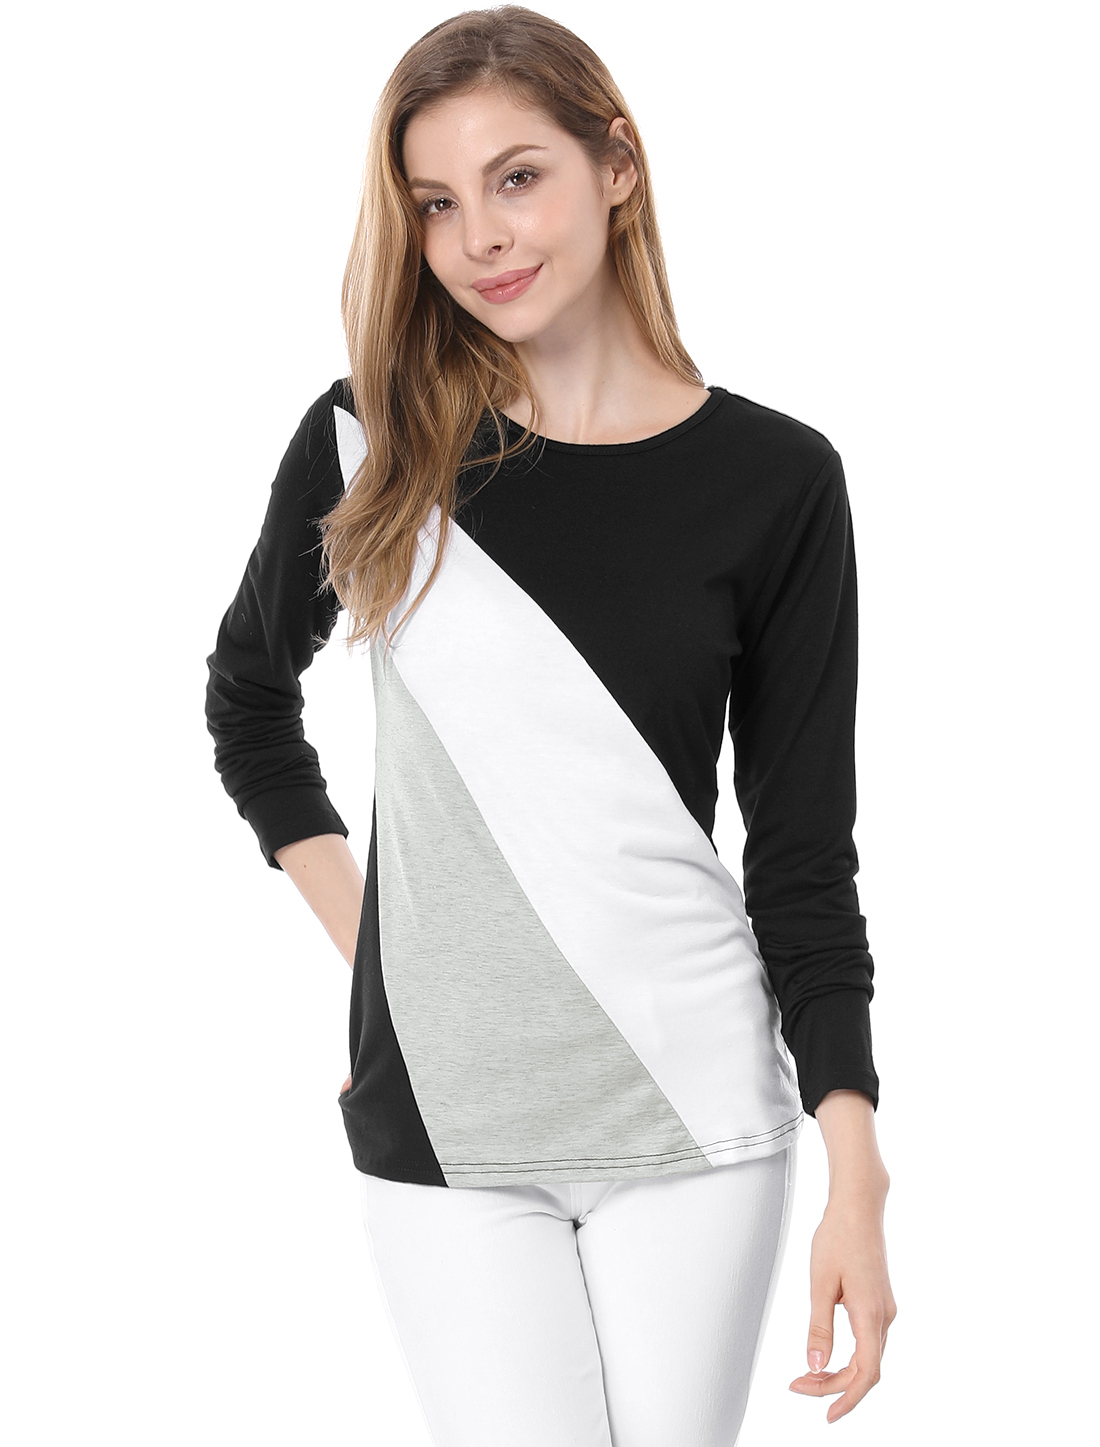 Women Color Block Long Sleeve Slim Fit T-Shirts Tops Black White XL